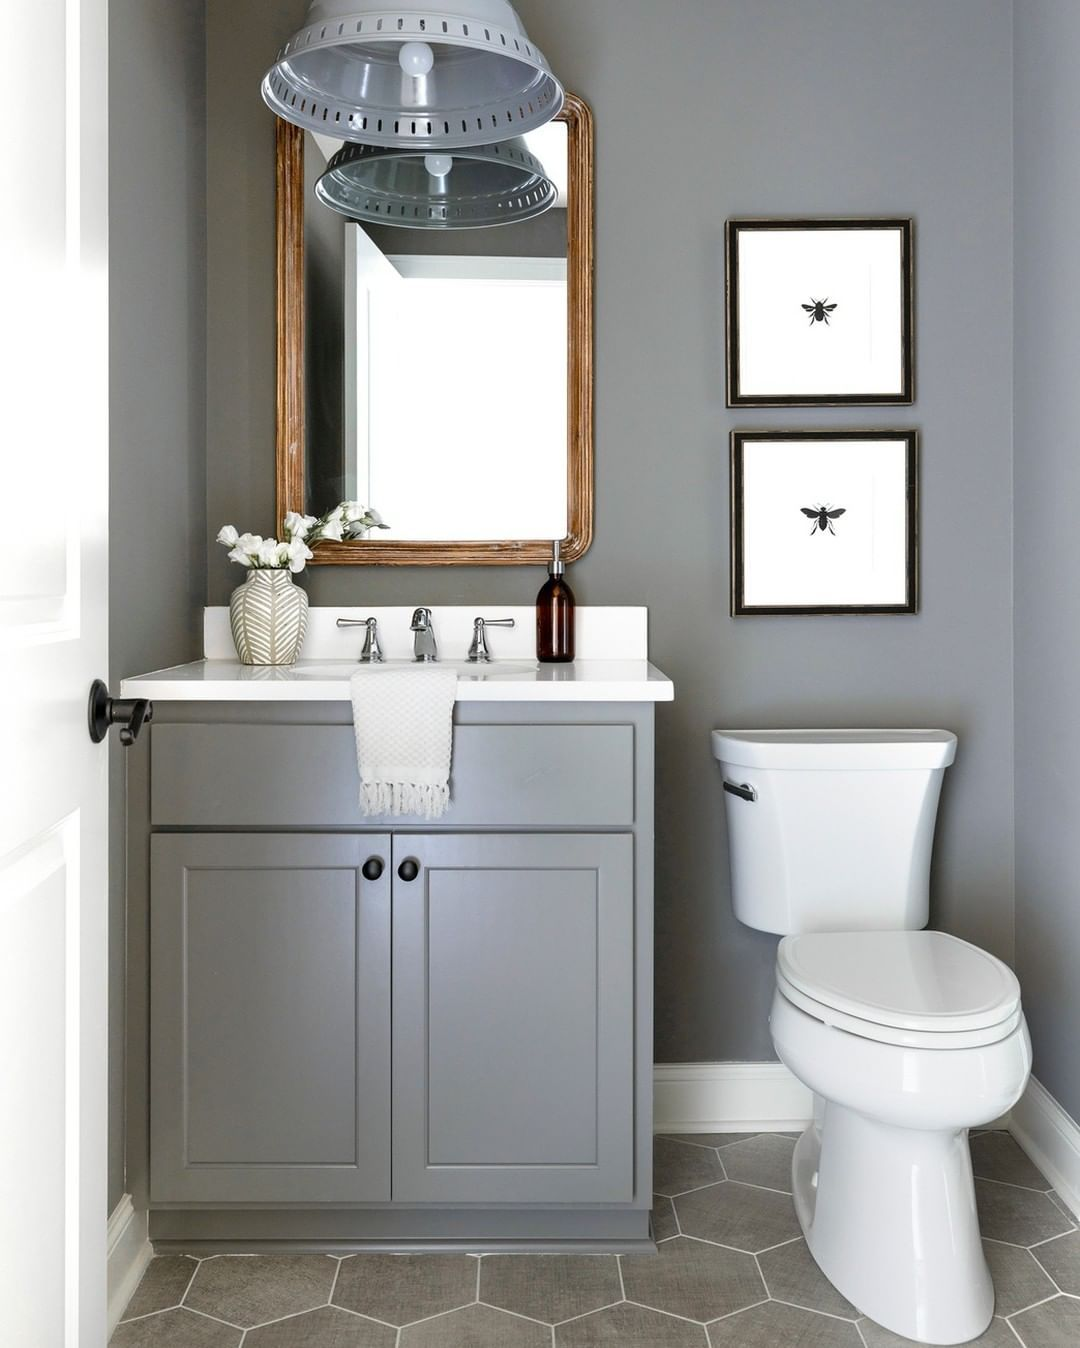 bria hammel interiors briahammelinteriors on on best paint colors for bathroom with no windows id=36781